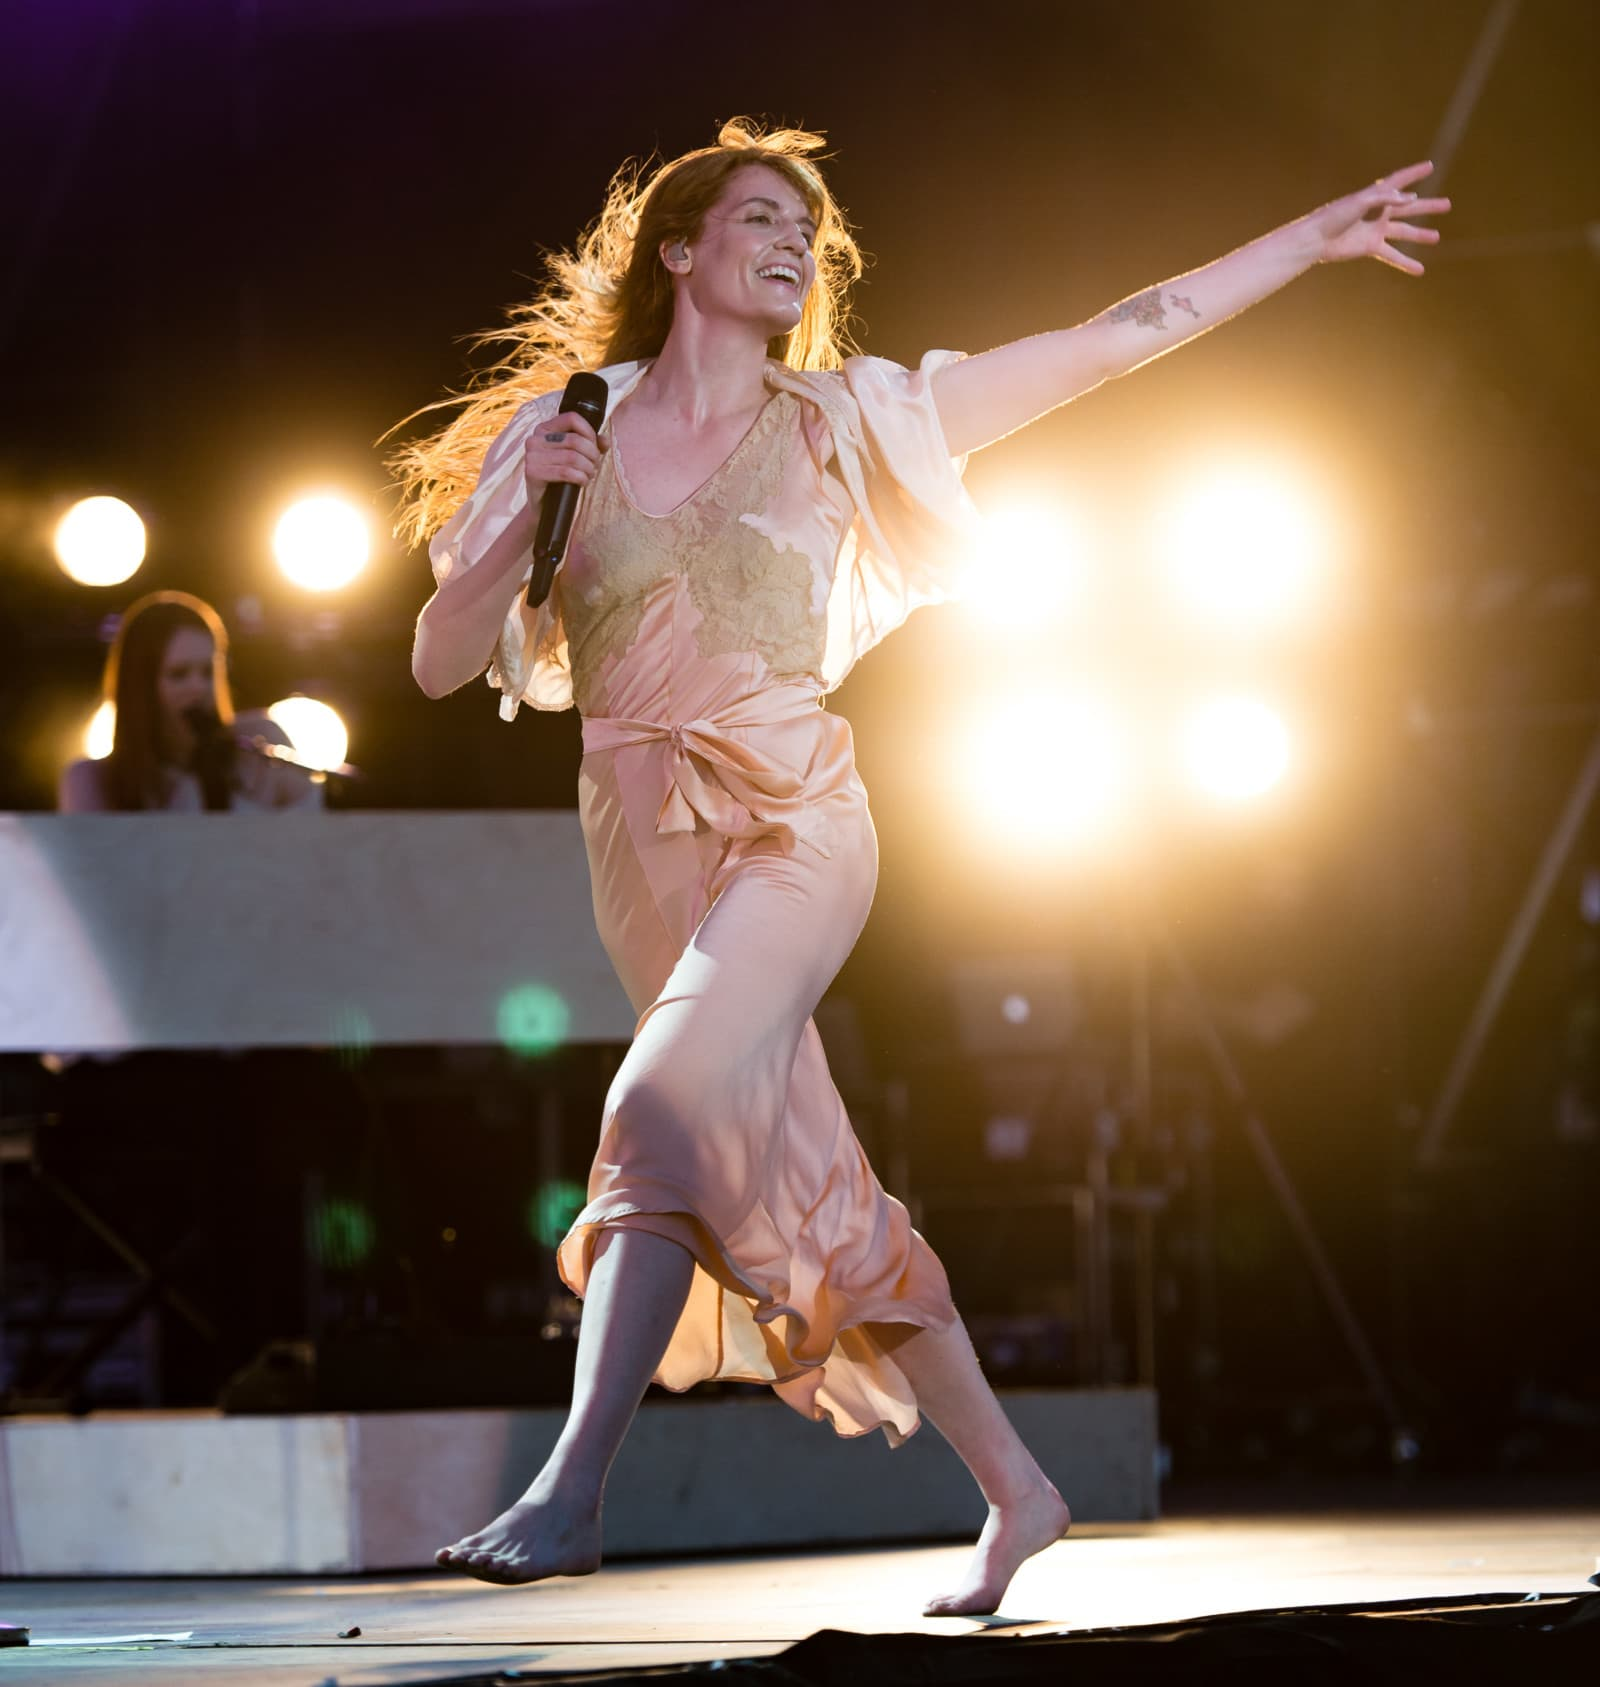 florence-welch-florence-and-the-machine-london-freelance-photographer-richard-isaac-3200